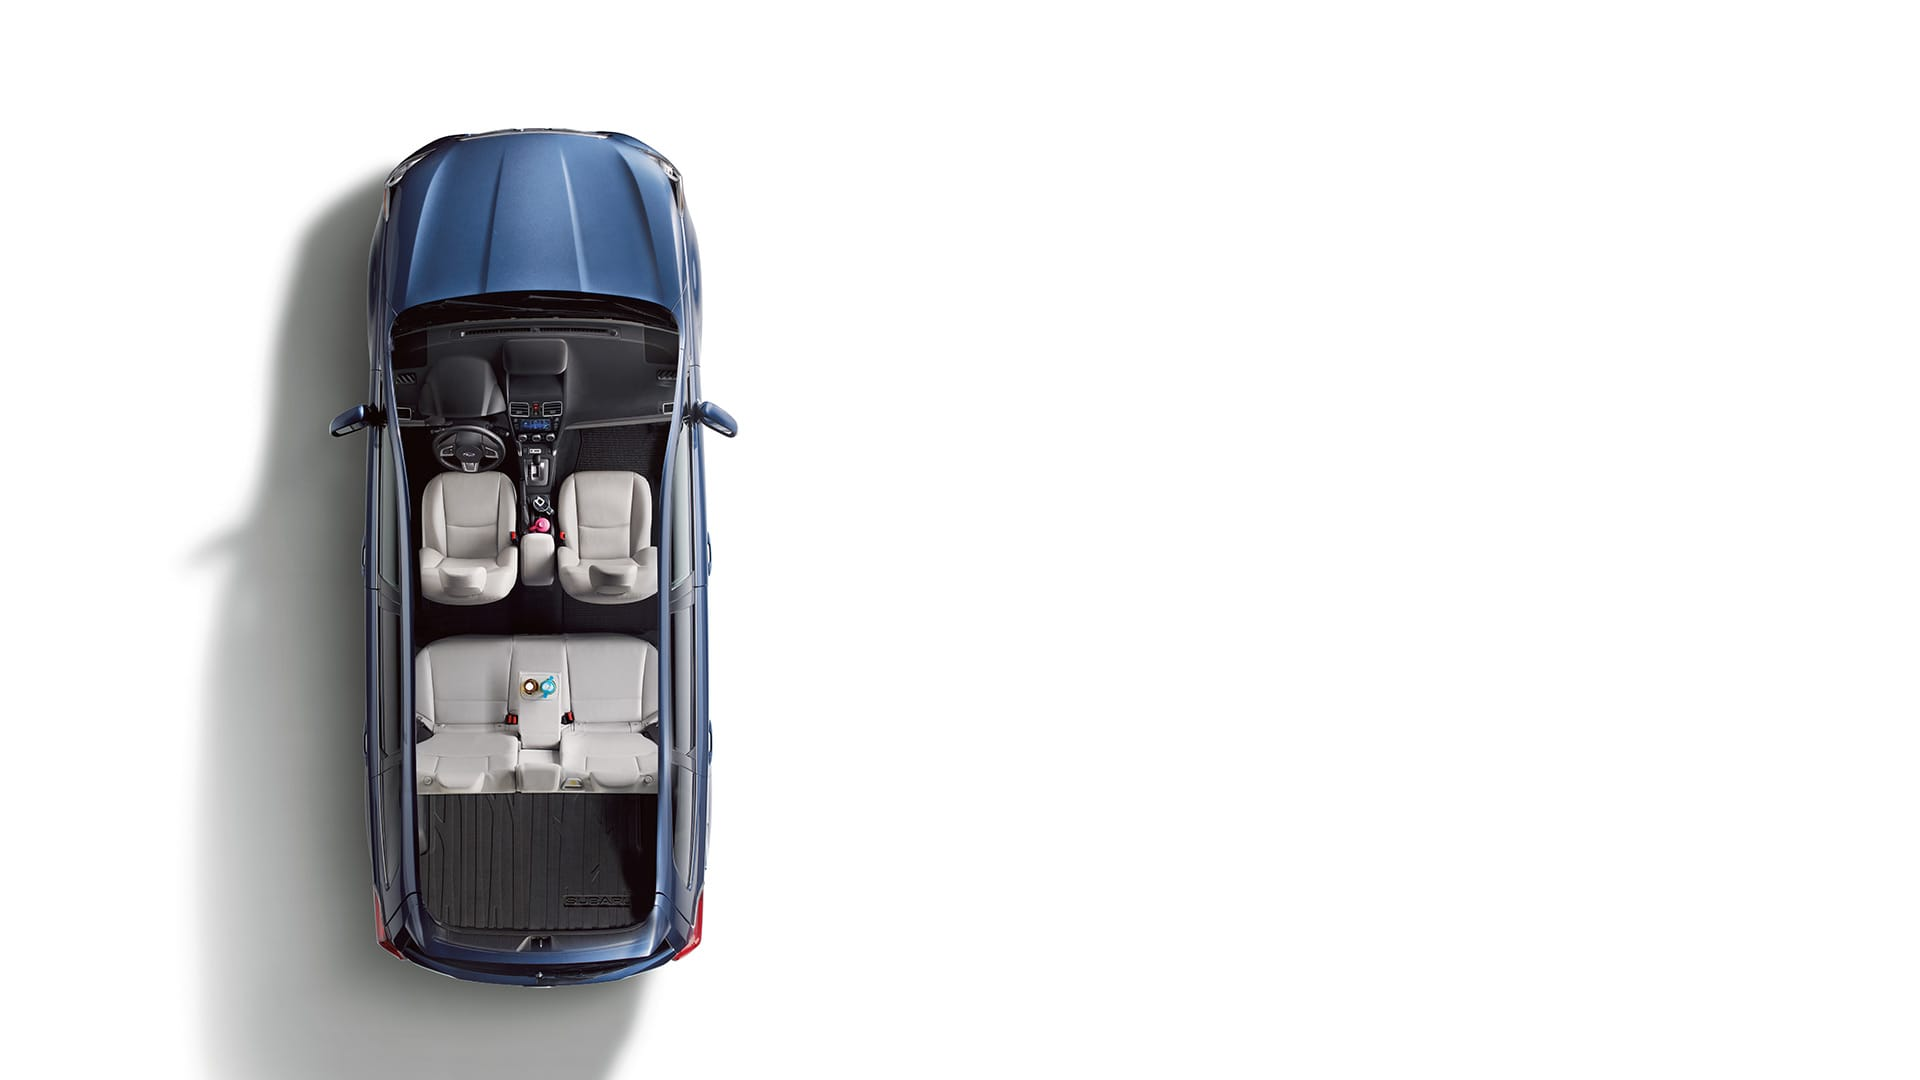 Passengers and cargo both get plenty of breathing room in the 2017 Forester. There's lots of room for front and rear passengers and ample space for everything else.